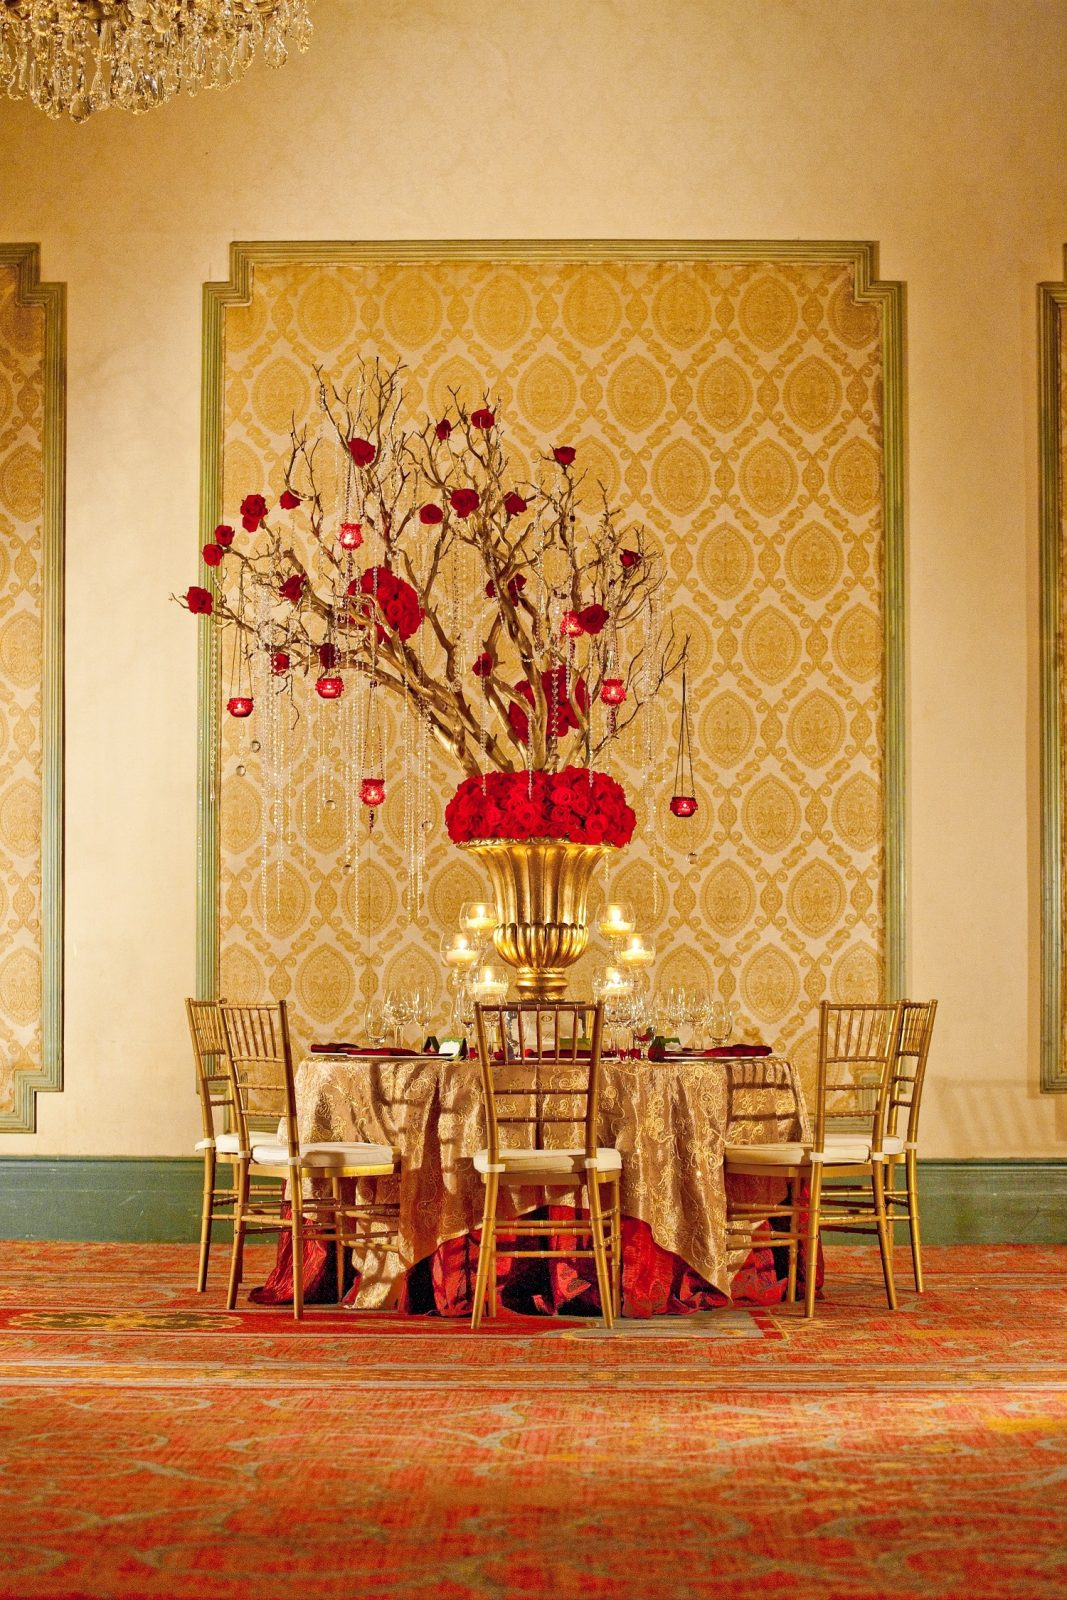 Golden Splendor Decor